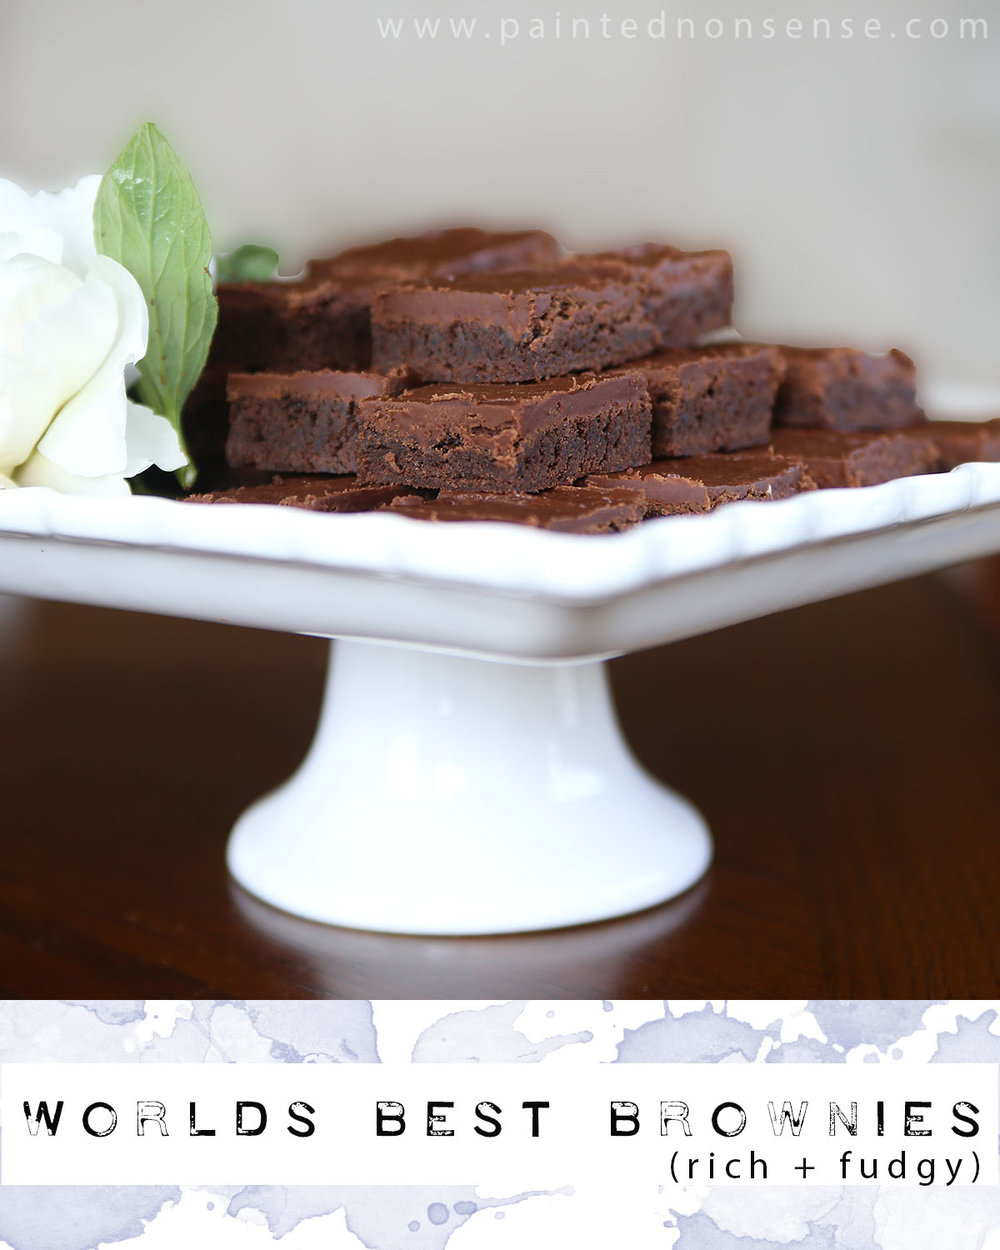 WorldsBestBrownies.jpg